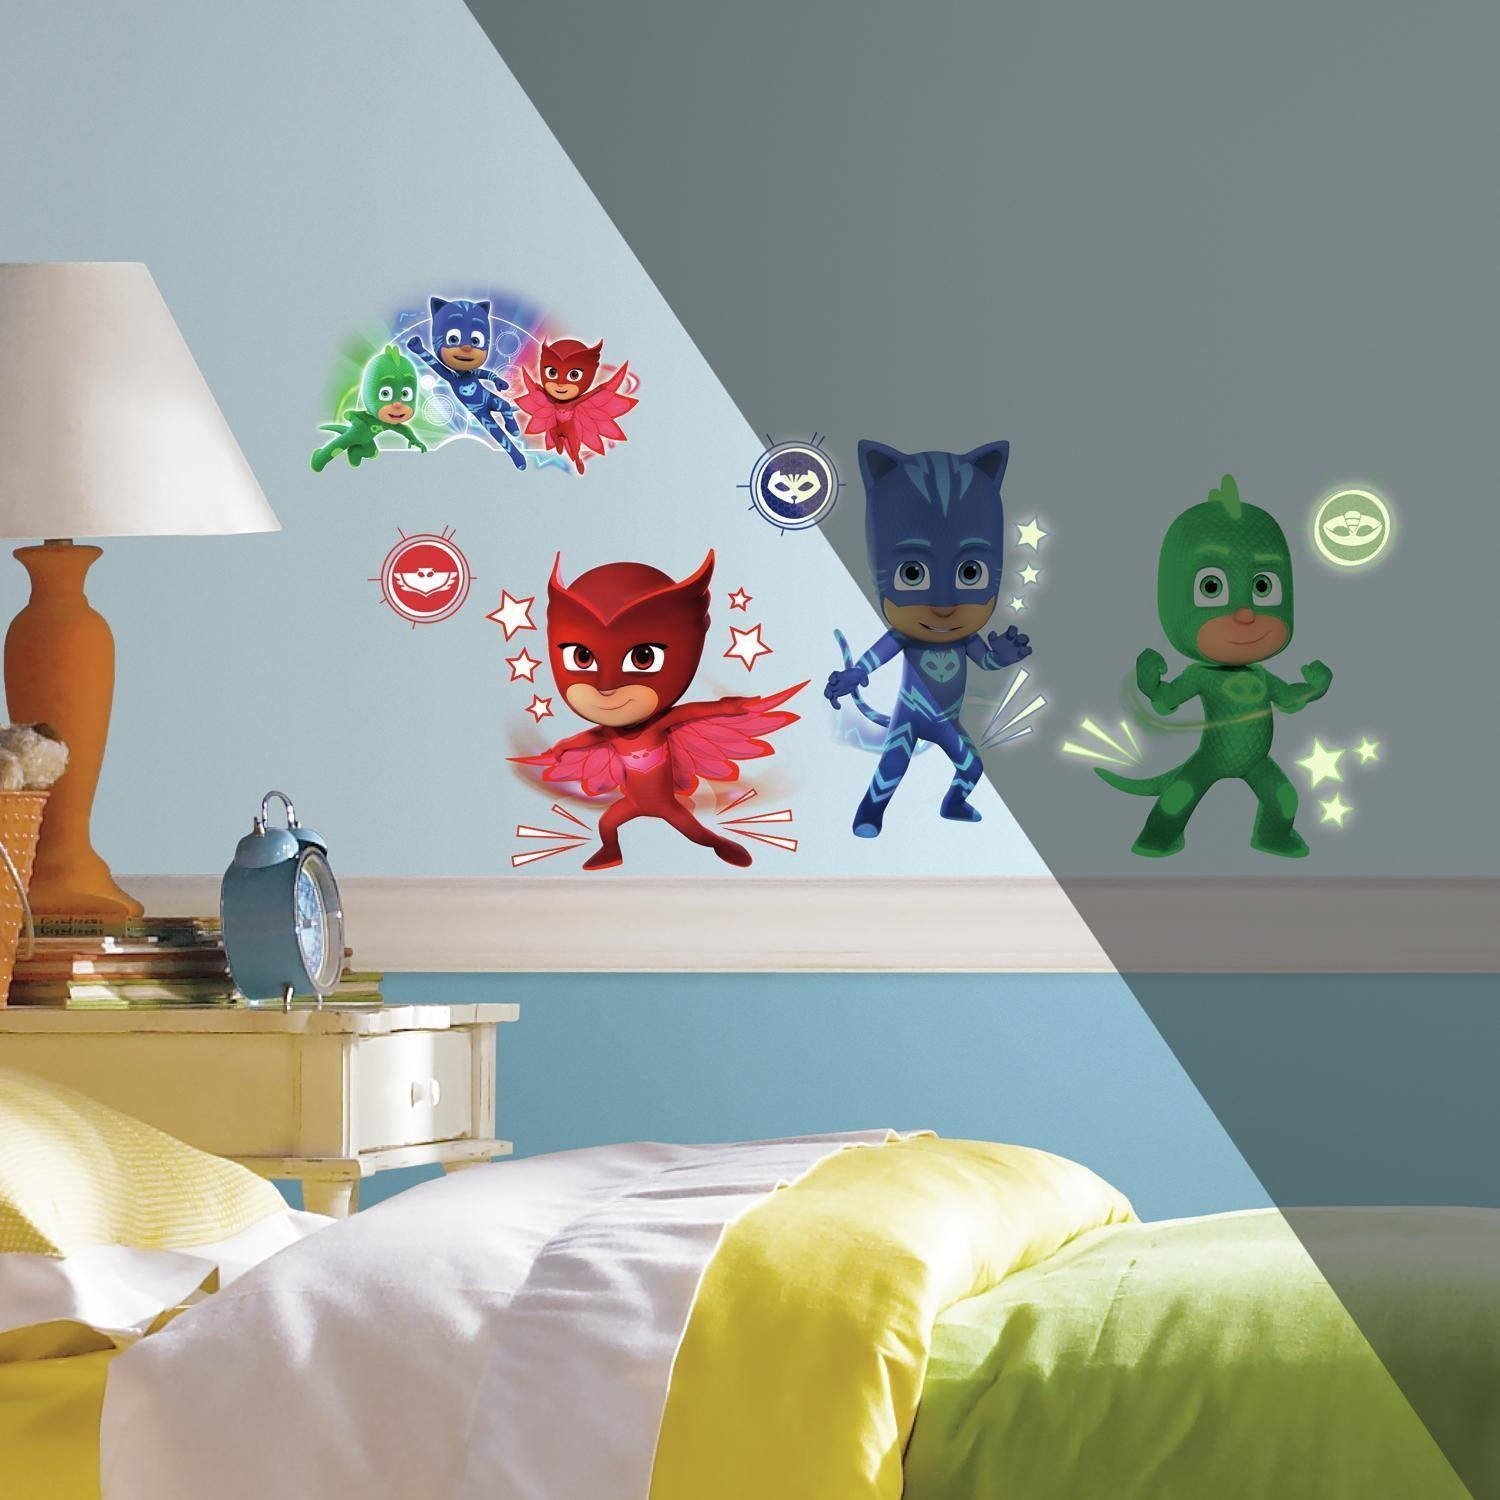 Amazon.com: PJ Masks Peel and Stick Wall Decals with Glow-in-the-Dark Elements: Home & Kitchen